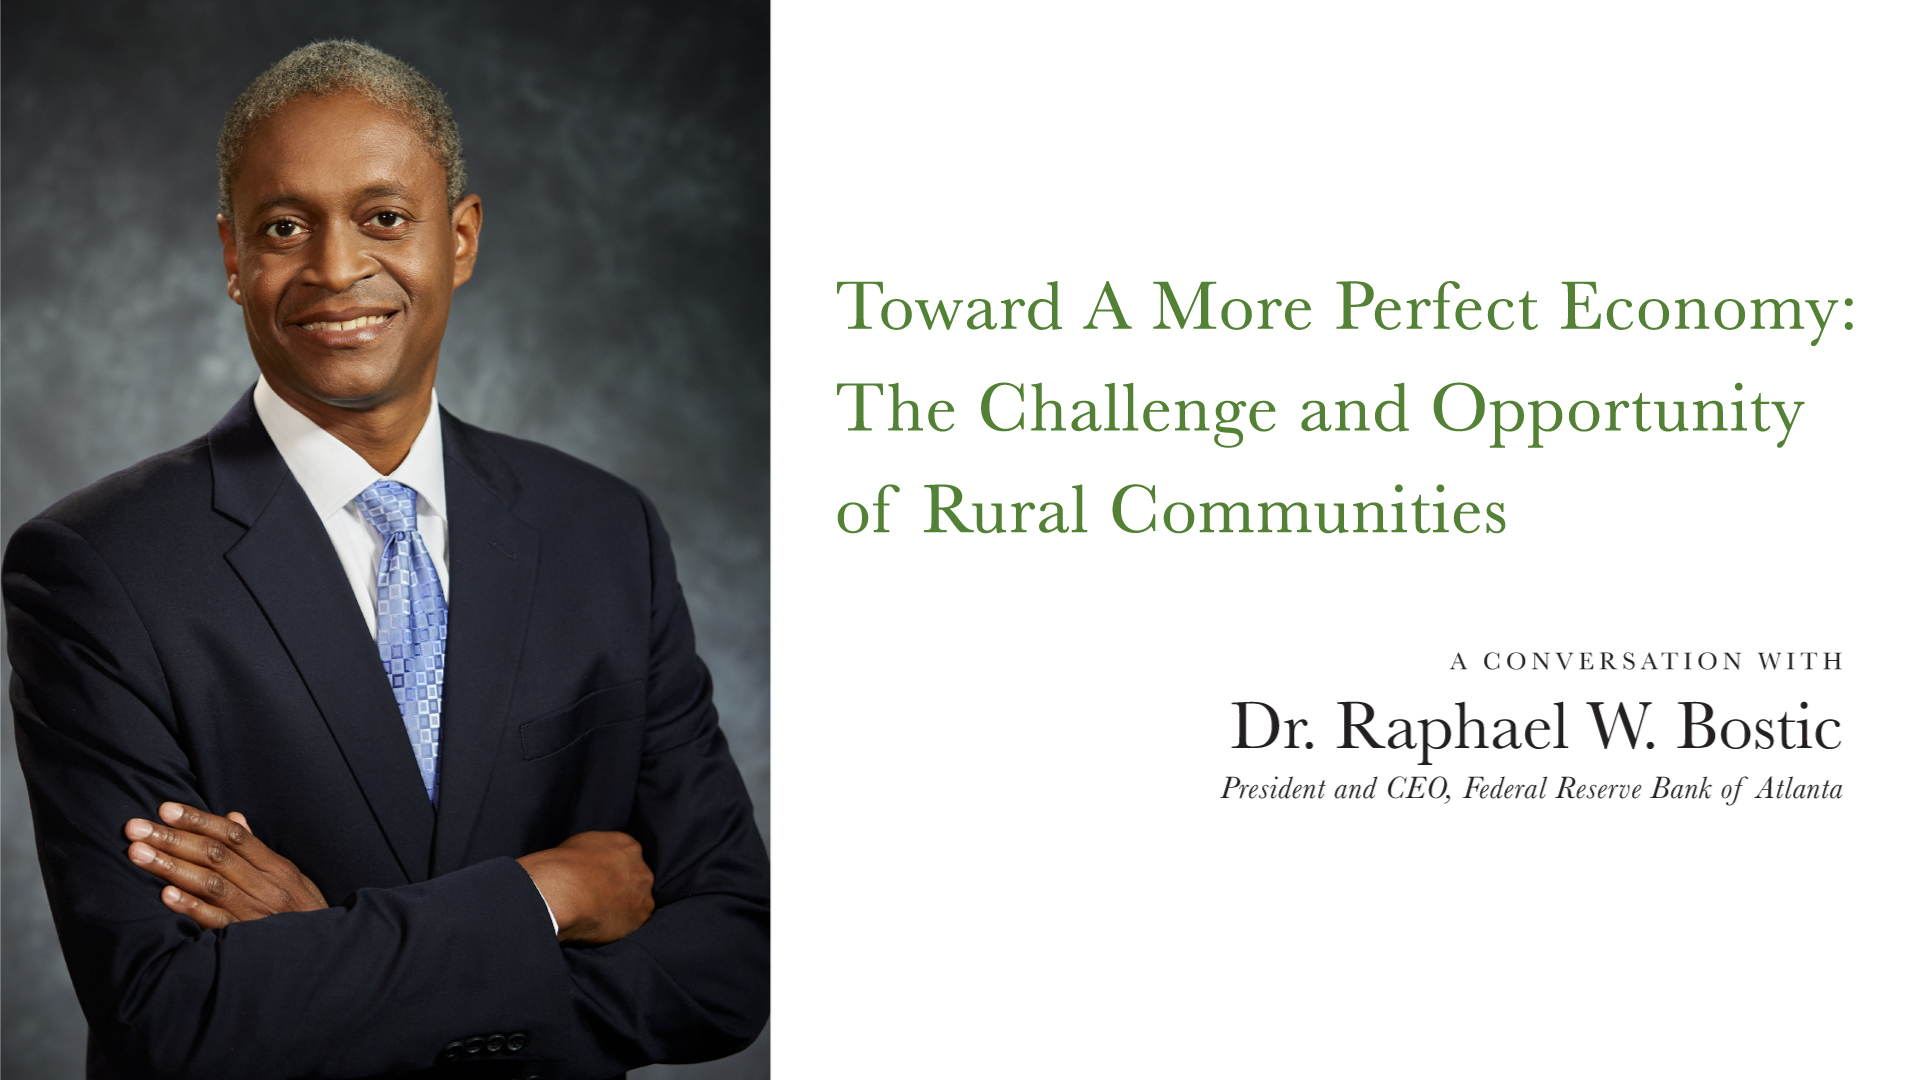 Image of Dr. Raphael Bostic and title of event.